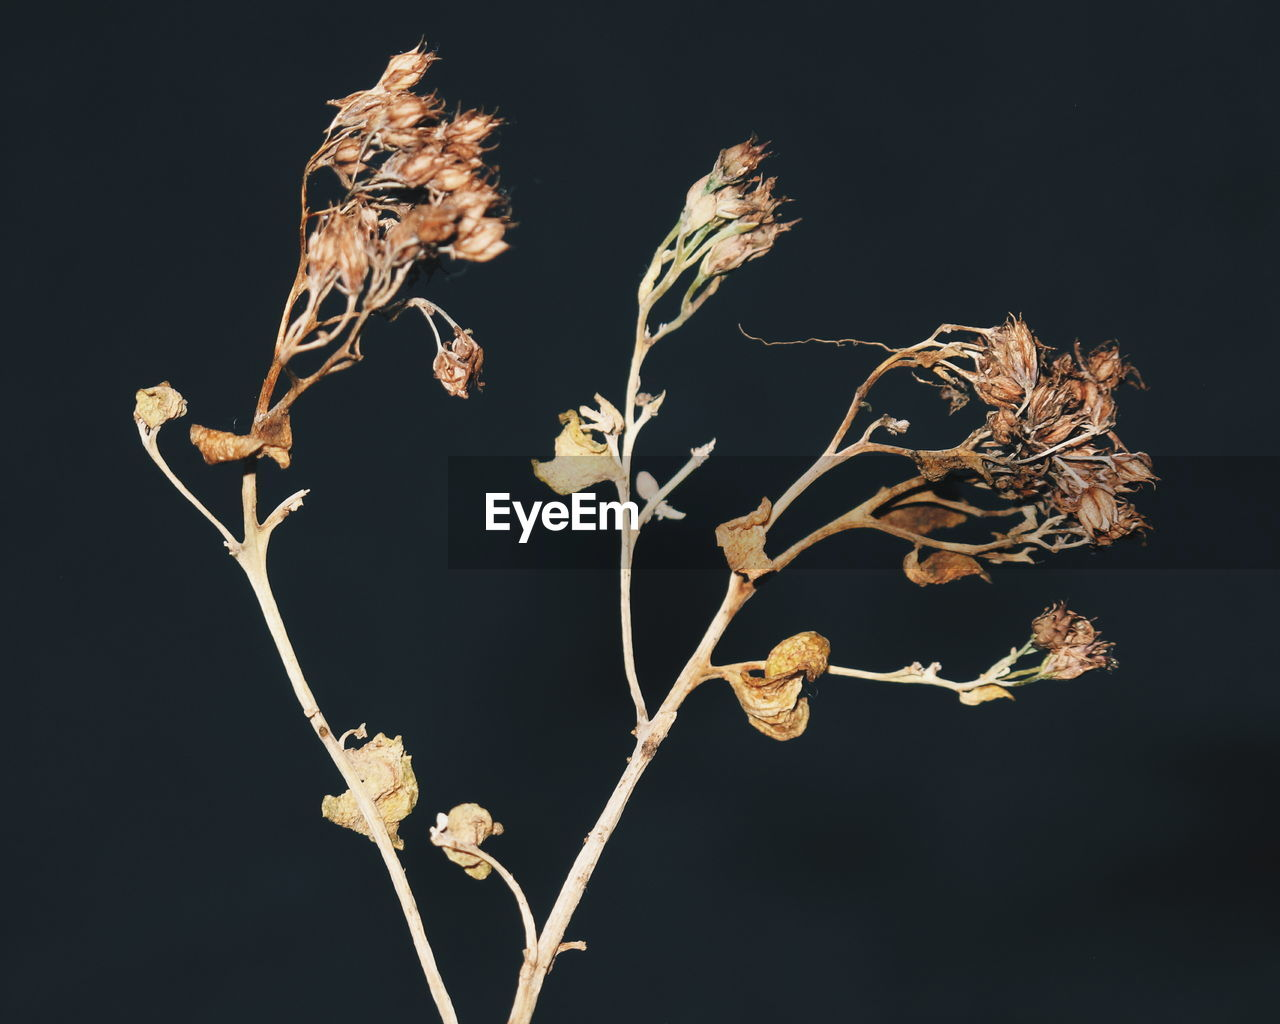 LOW ANGLE VIEW OF DRY FLOWERS AGAINST BLACK BACKGROUND